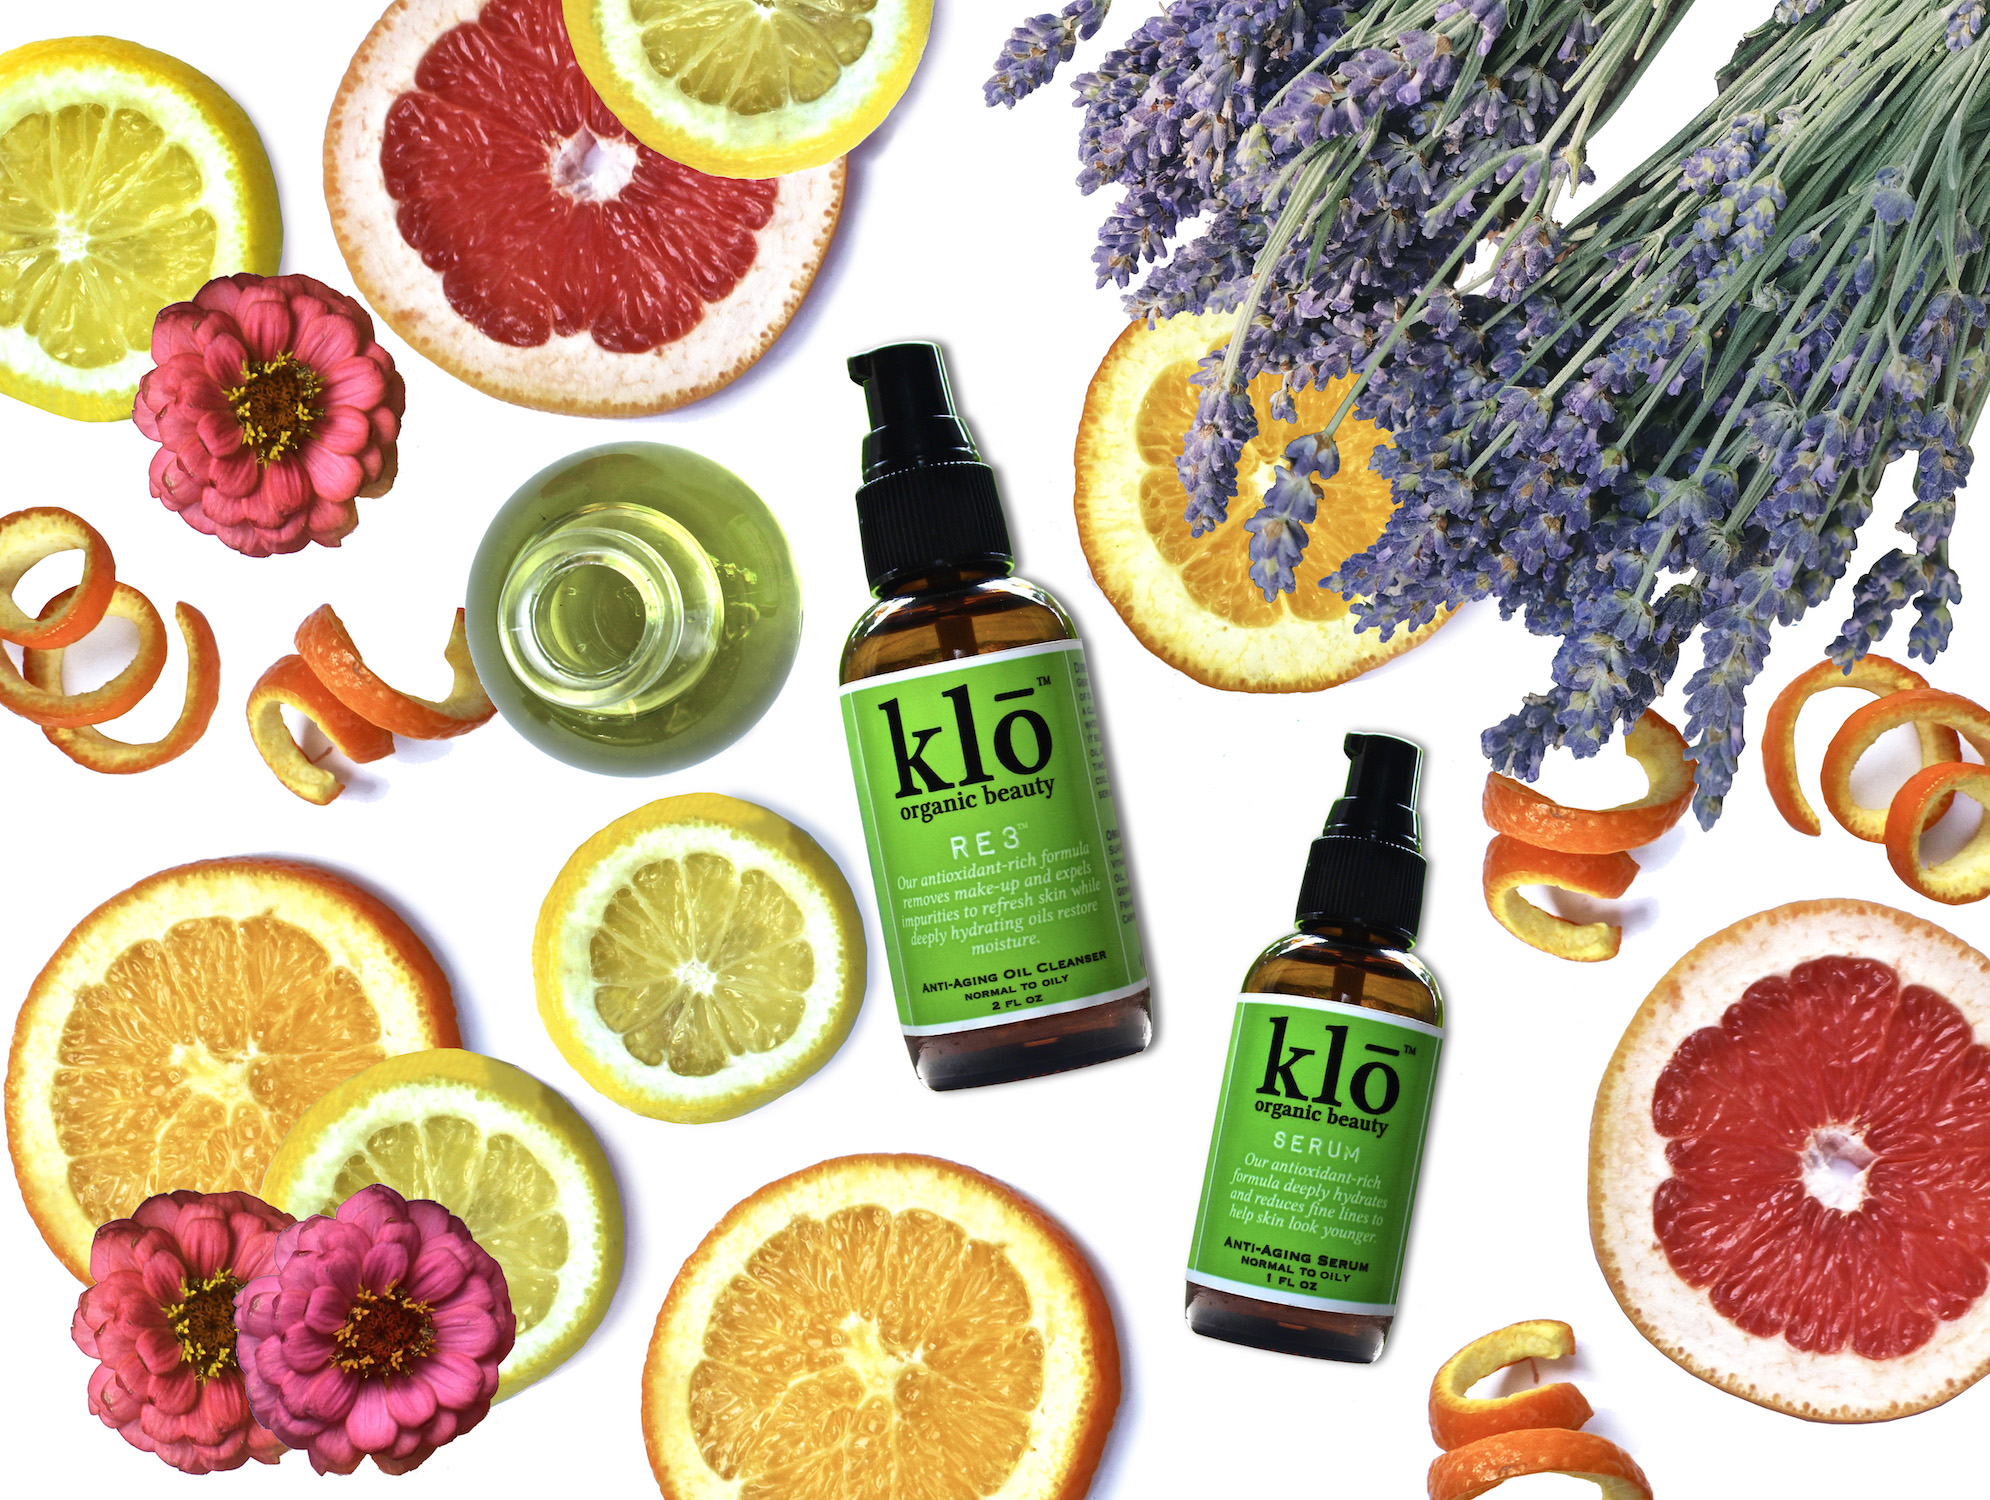 Klō Organic Beauty oil cleanser and serum duo with flowers and citrus